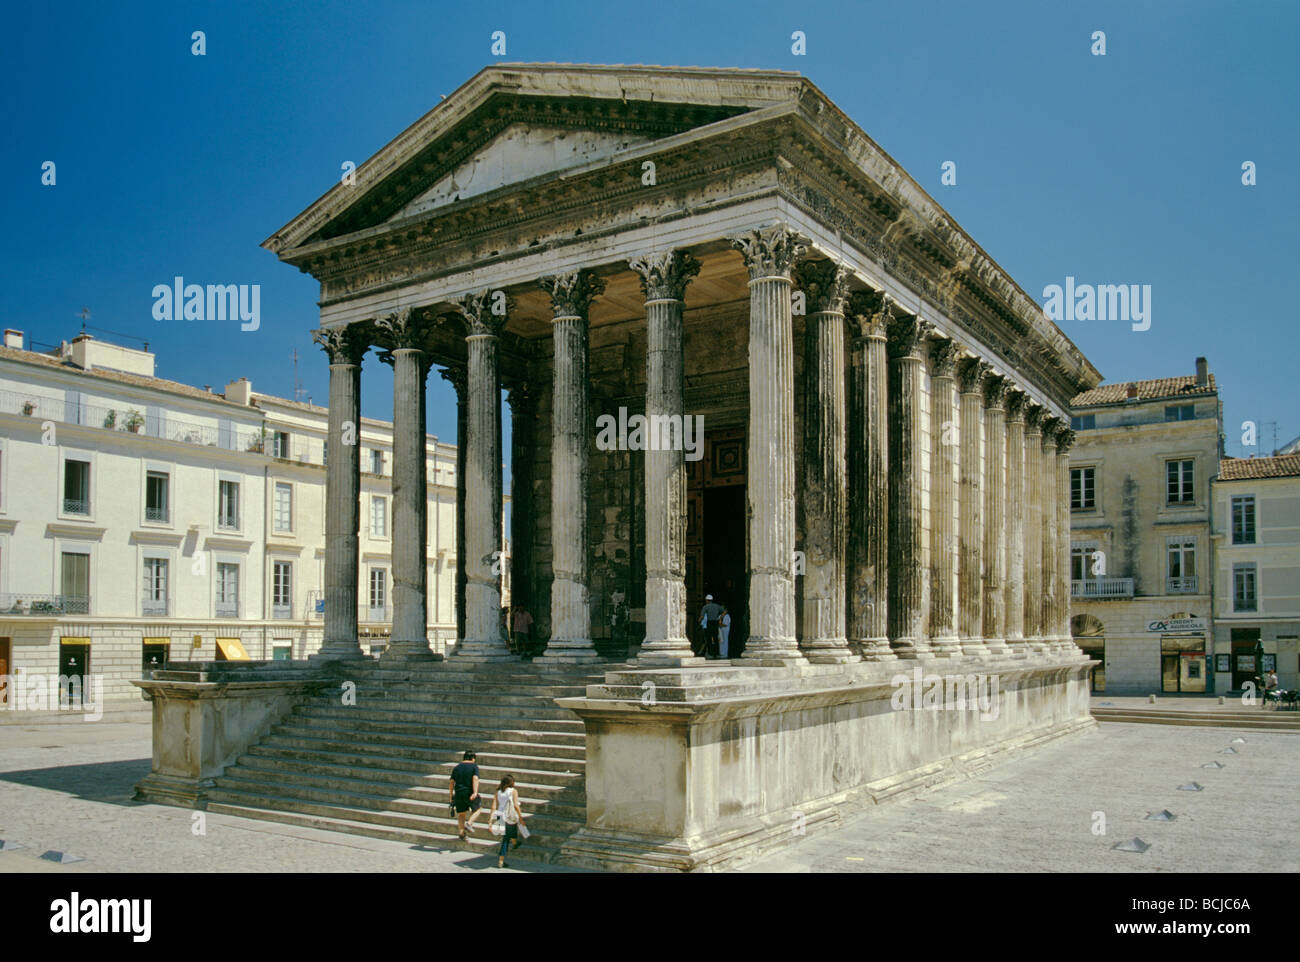 Salon De Provence Nimes Maison Carree Square House Roman Temple At Nimes In